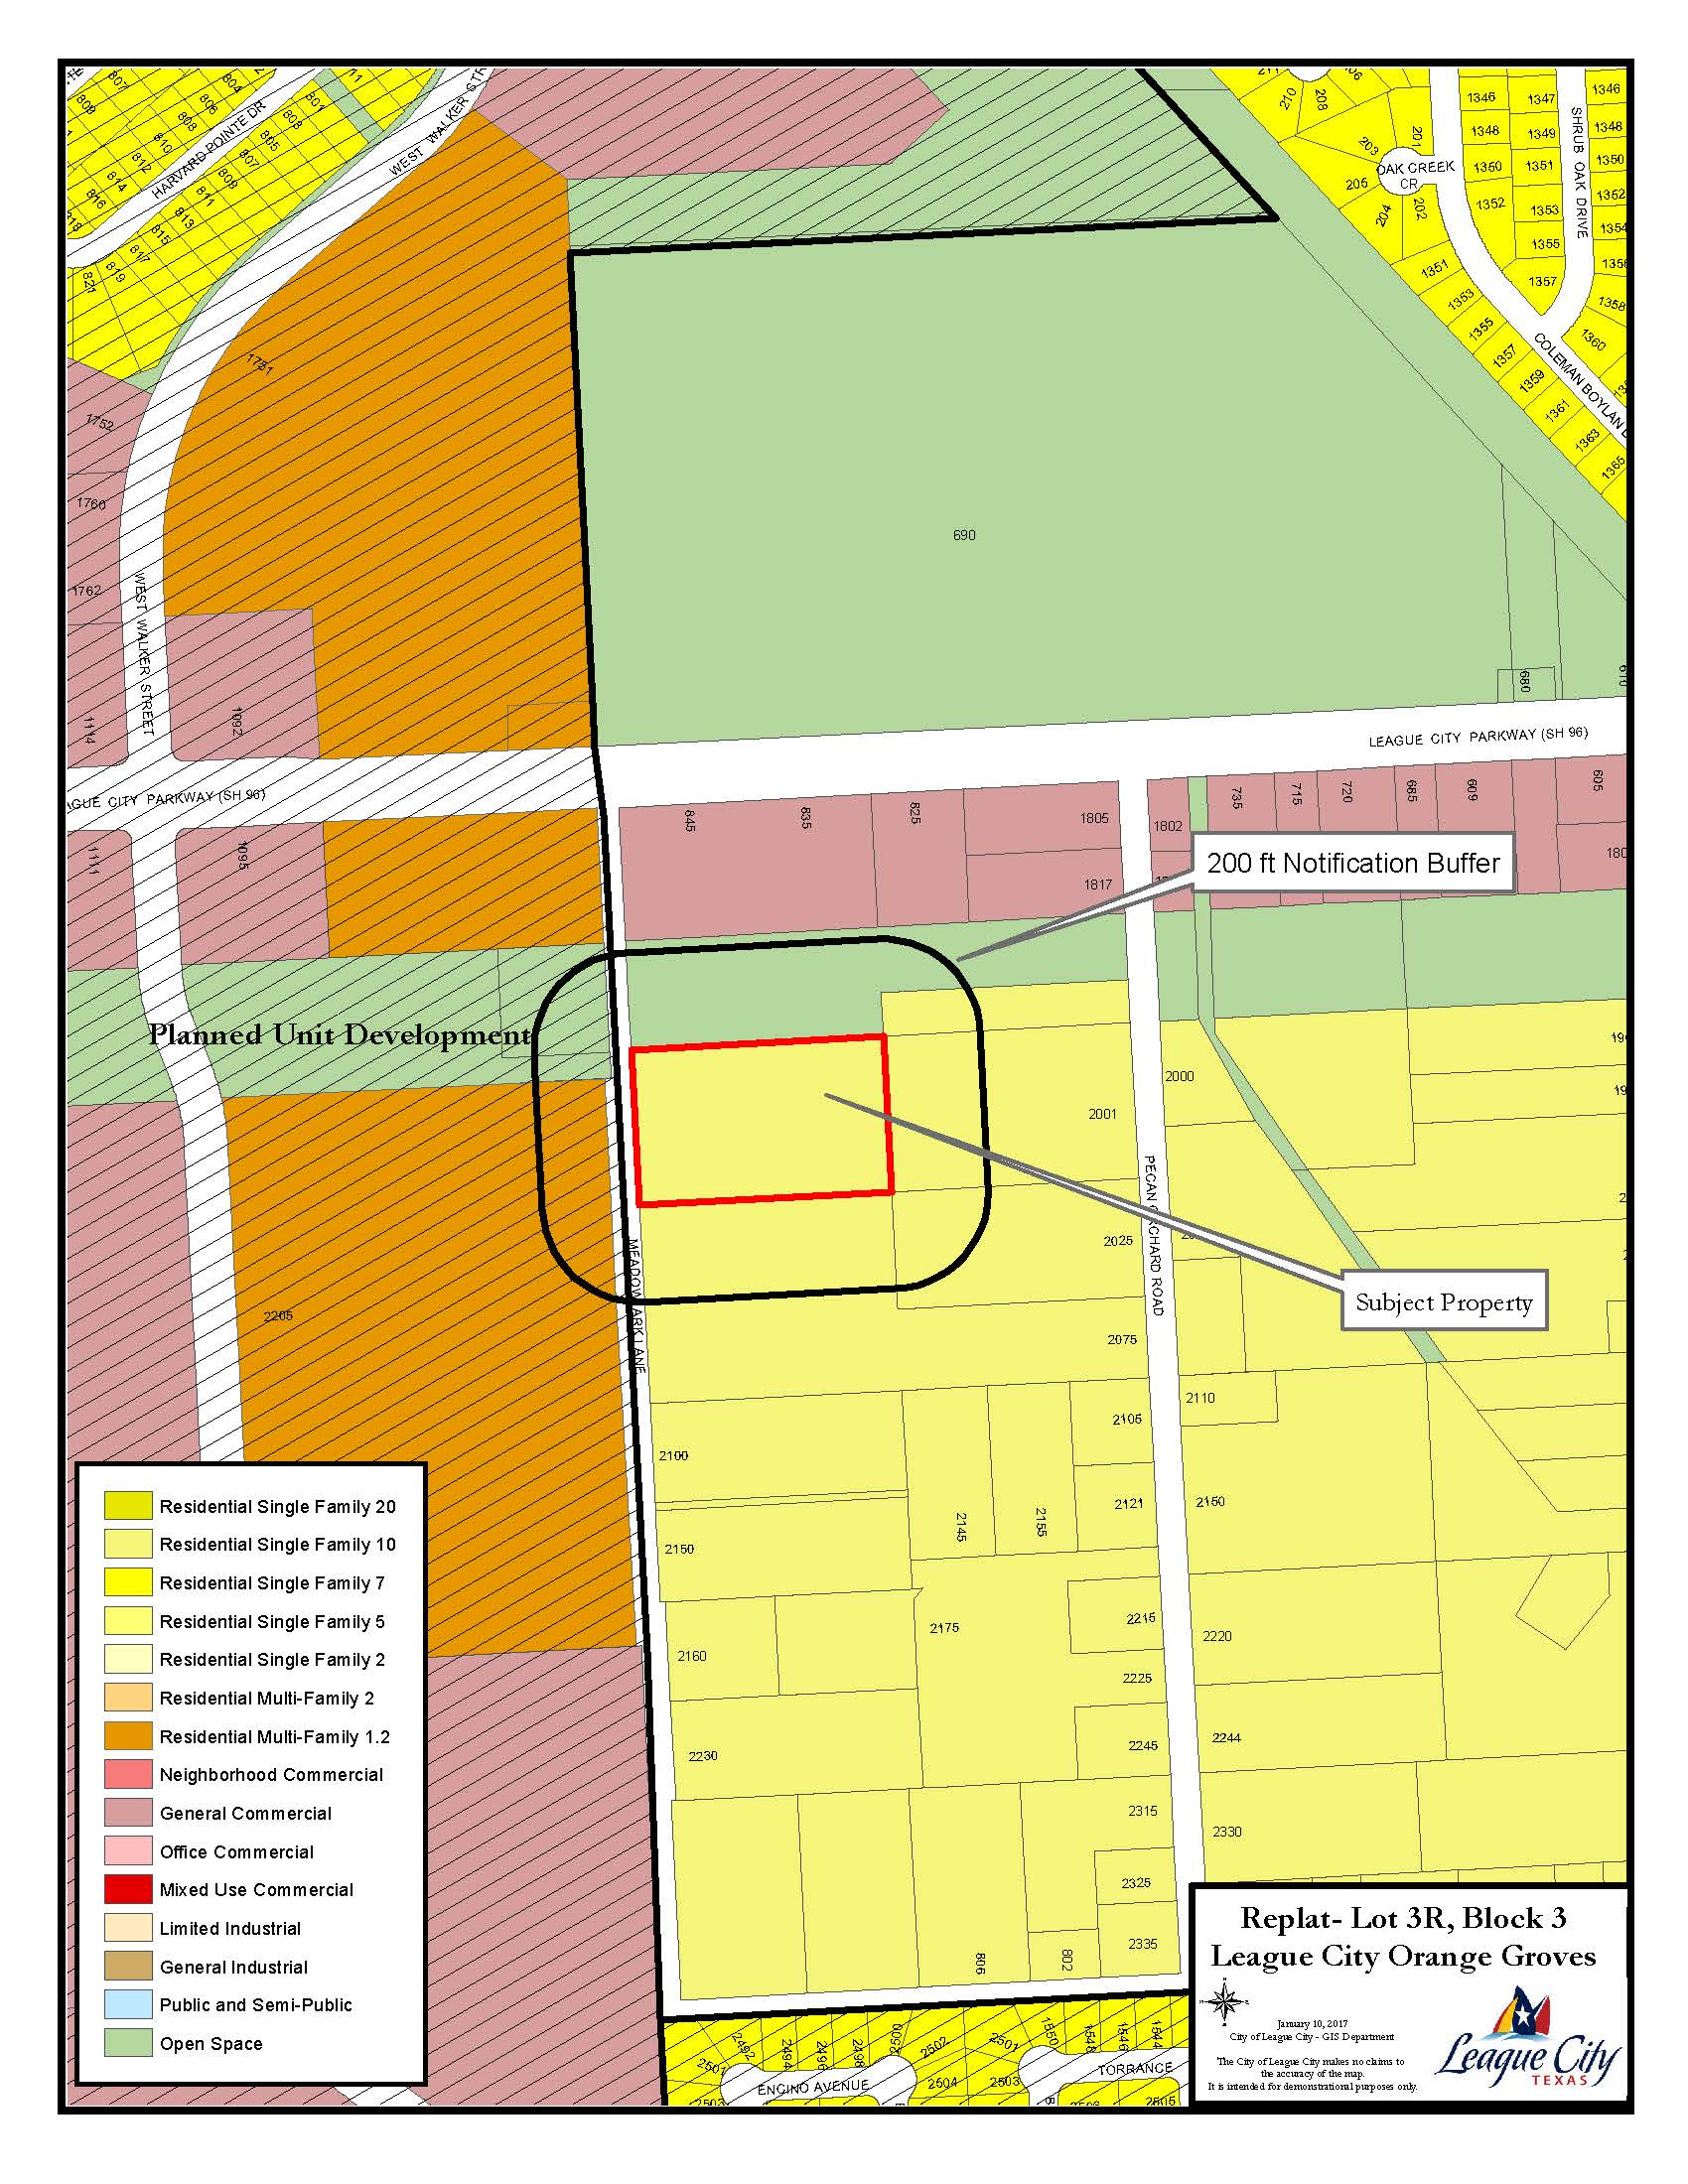 Replat Orange Groves Lot 3R Block 3 Zoning map